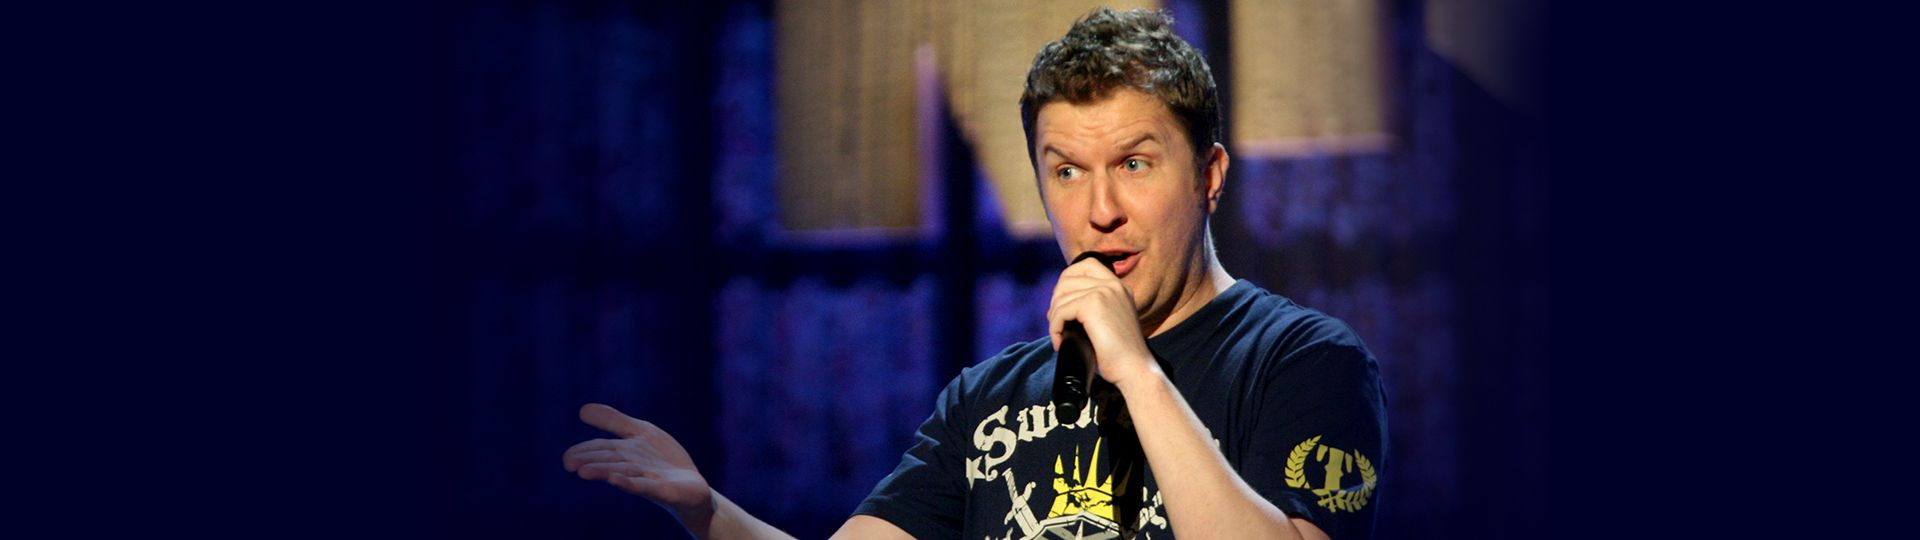 nick swardson too high